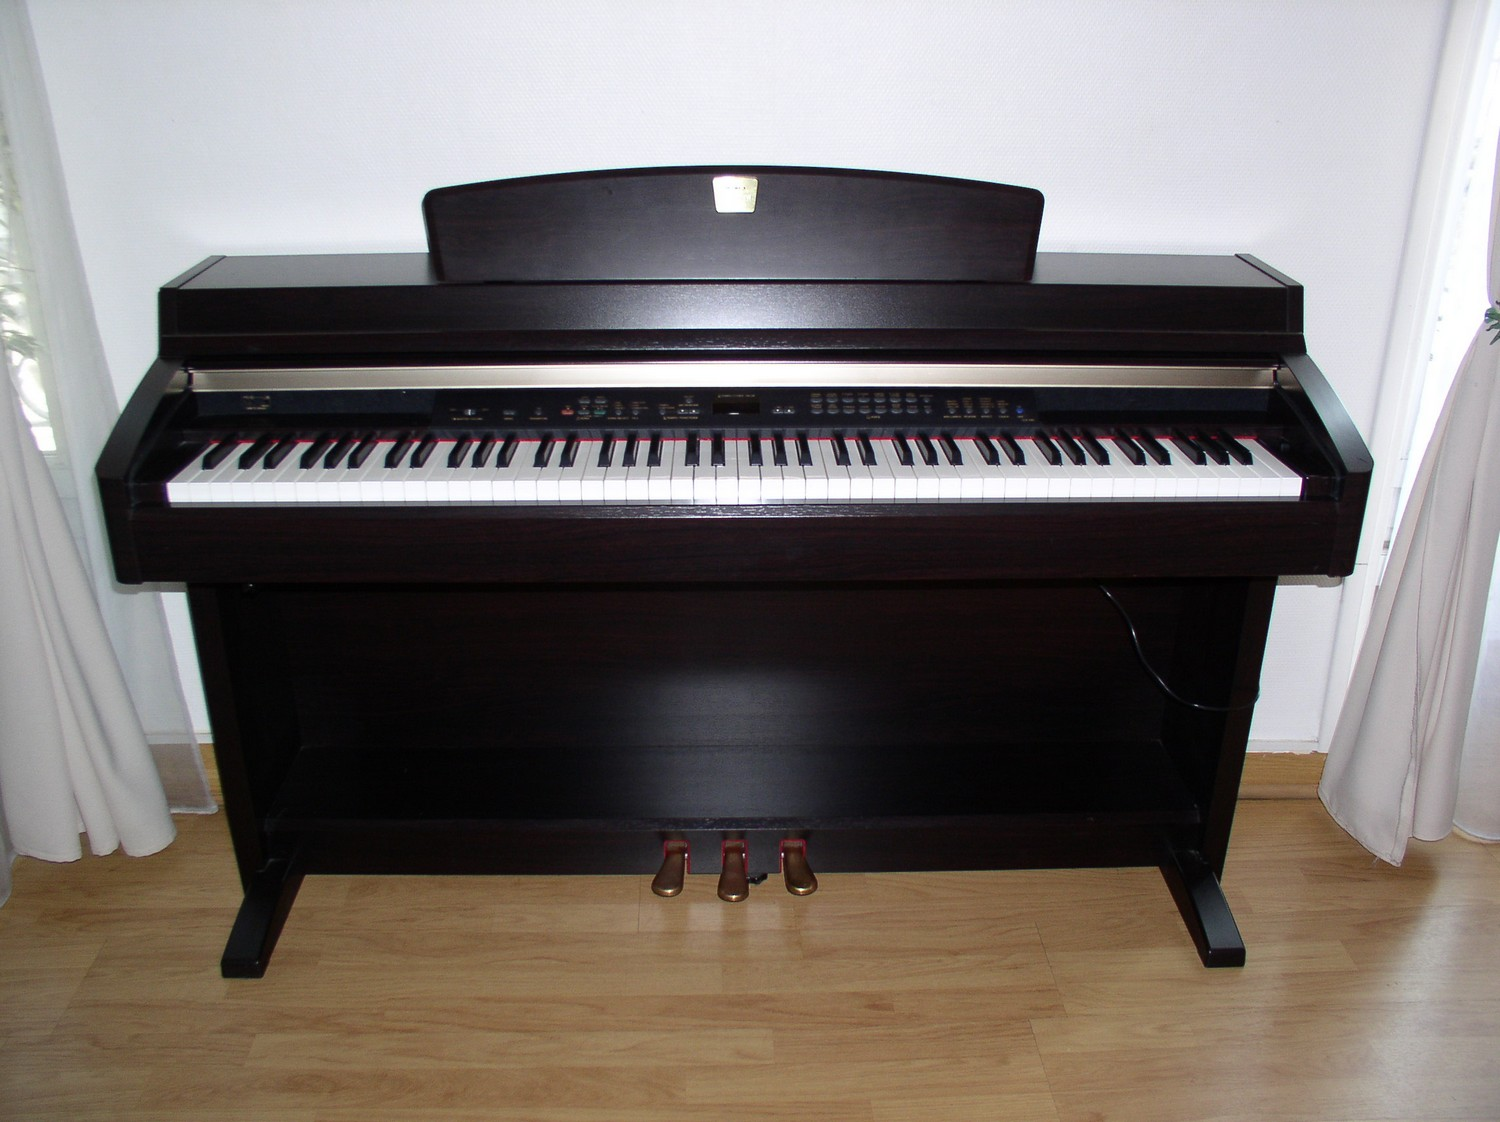 Yamaha clp 240 image 288811 audiofanzine for Yamaha clavinova price list